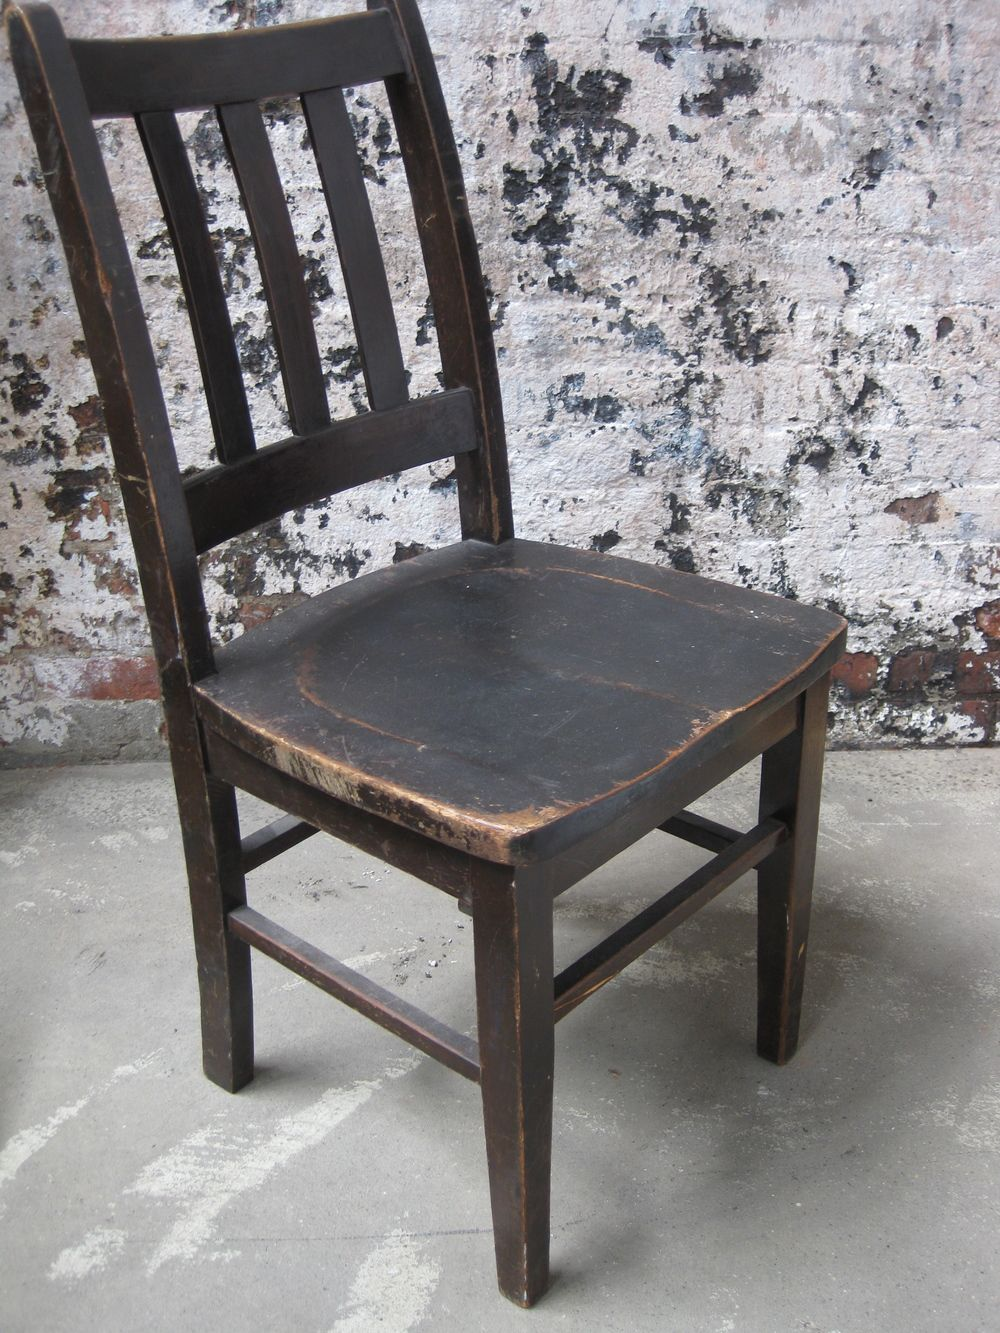 Wood Seating — Primate Props - Wood Seating — Primate Props Chair In 2018 Chair, Wood, Old